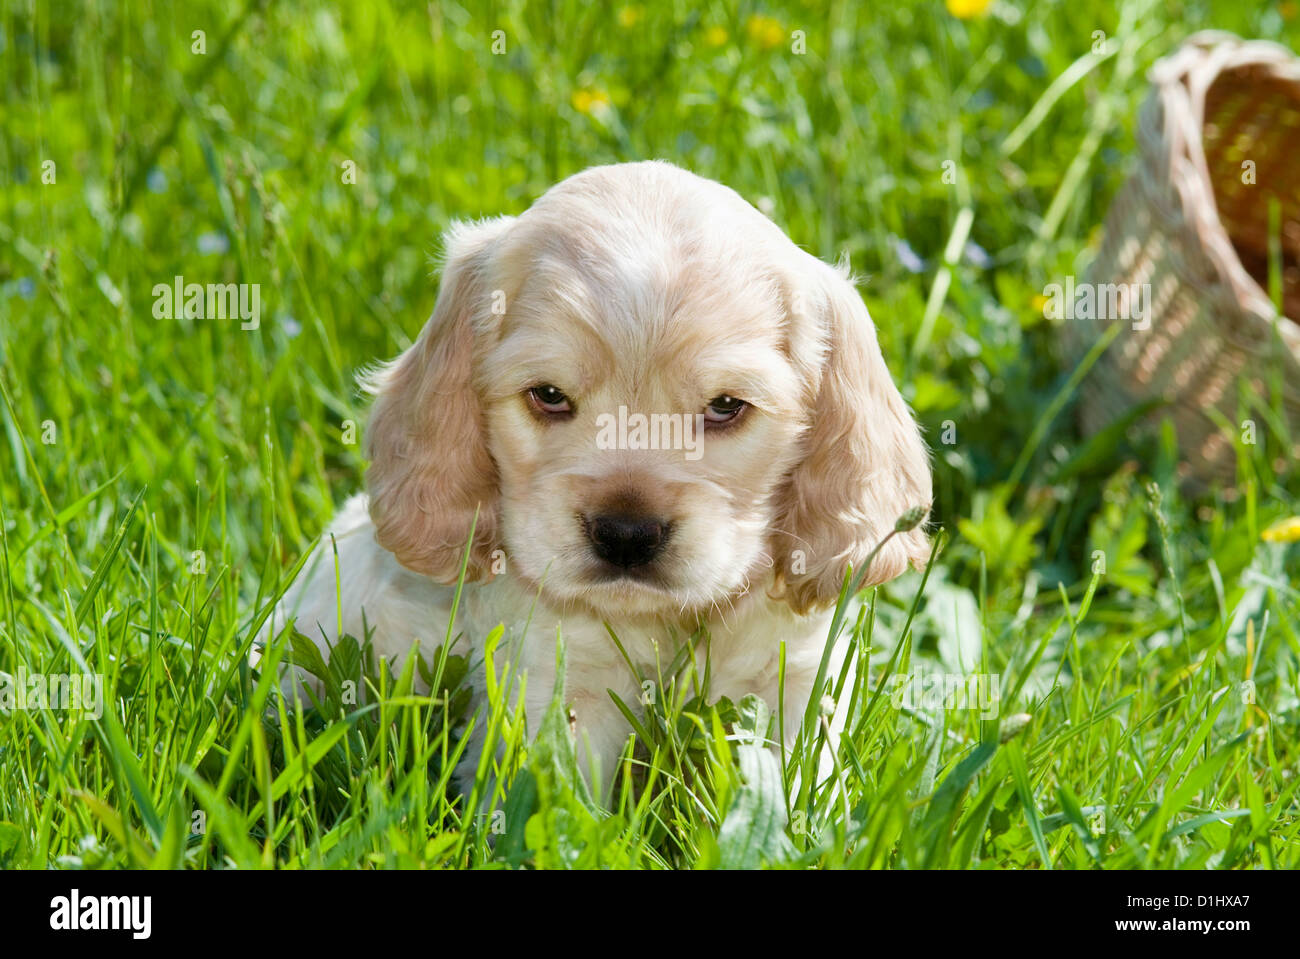 Young English Cocker Spaniel dog puppy in the gras - Stock Image